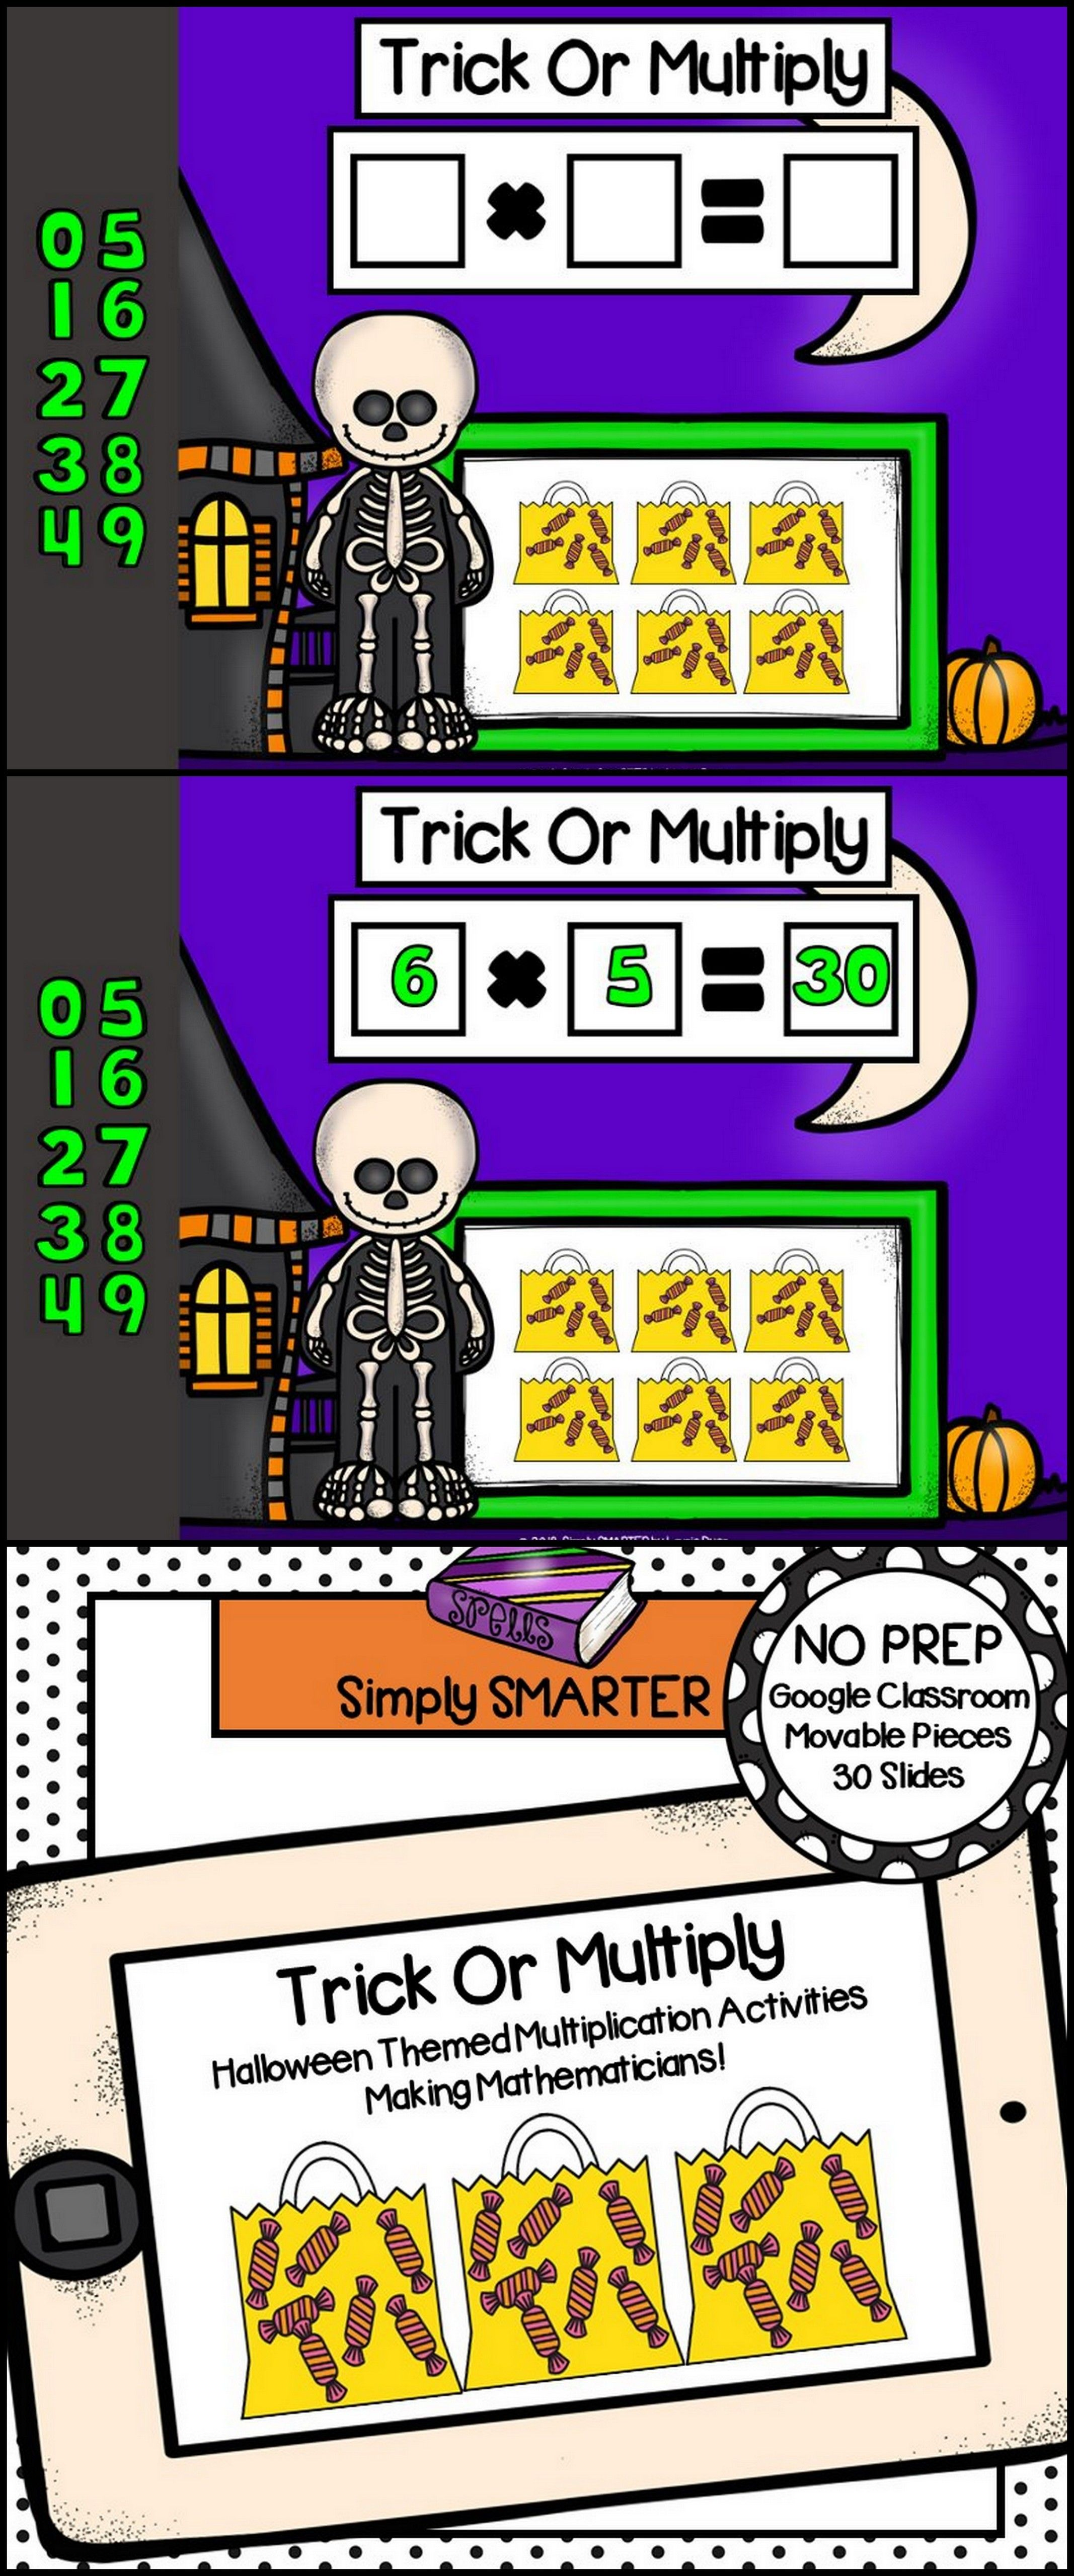 Are You Looking For No Prep Math Activities For Third Or